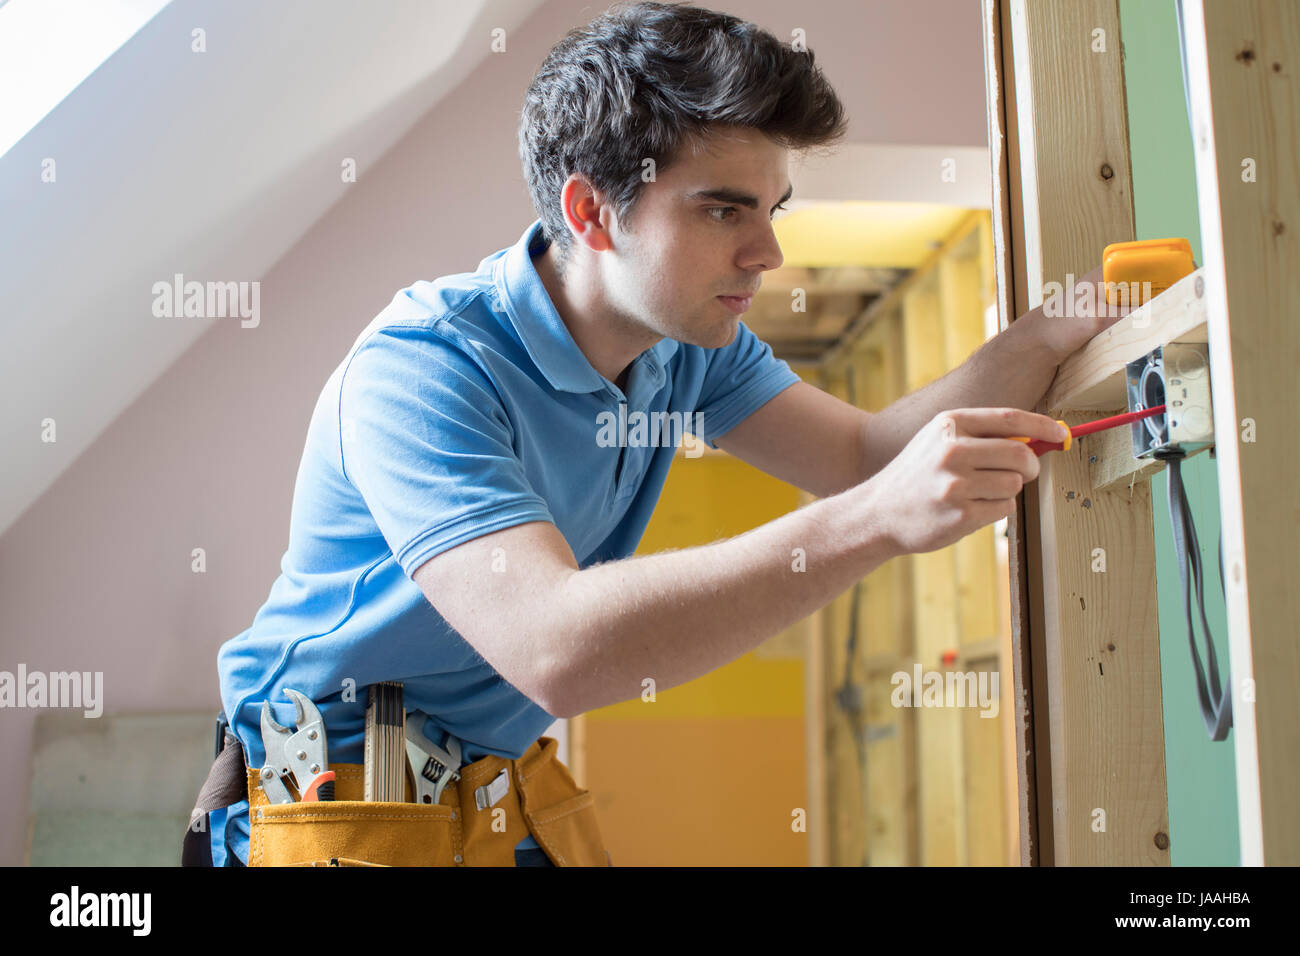 Electrician Installing Socket In New House - Stock Image